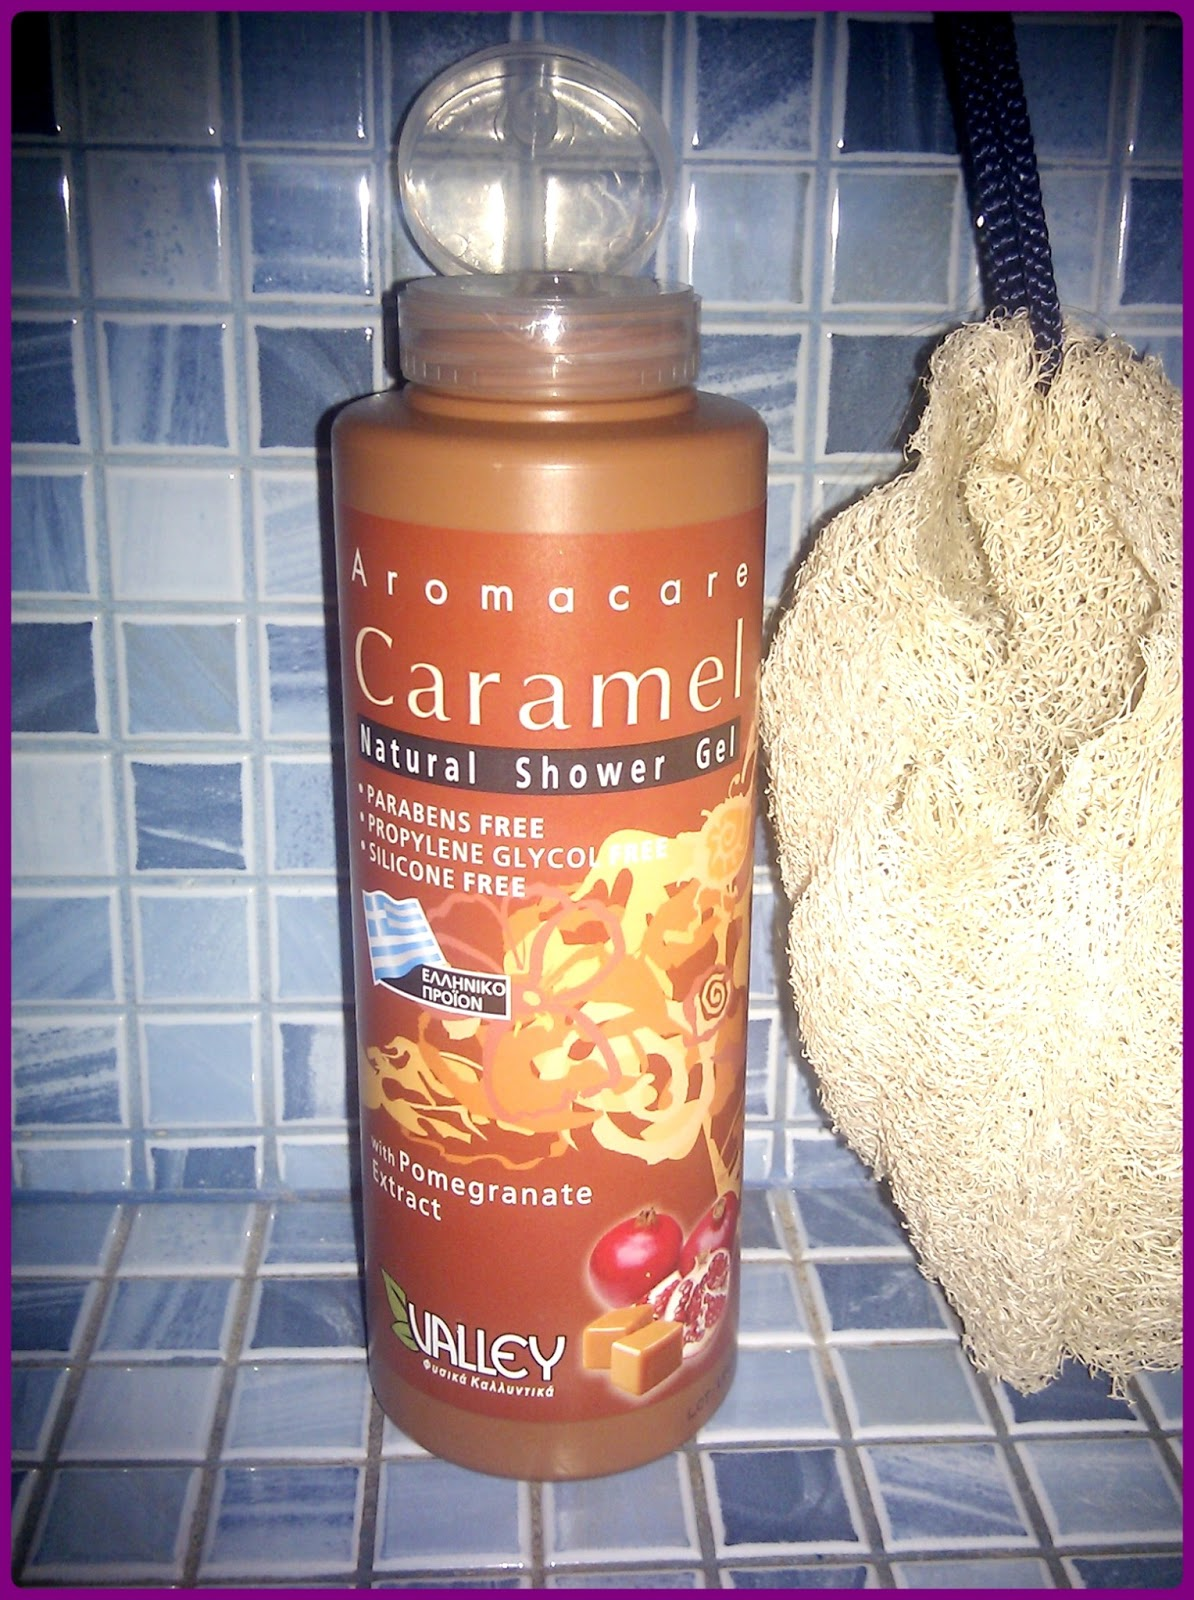 Valley Aromacare Caramel Natural Shower